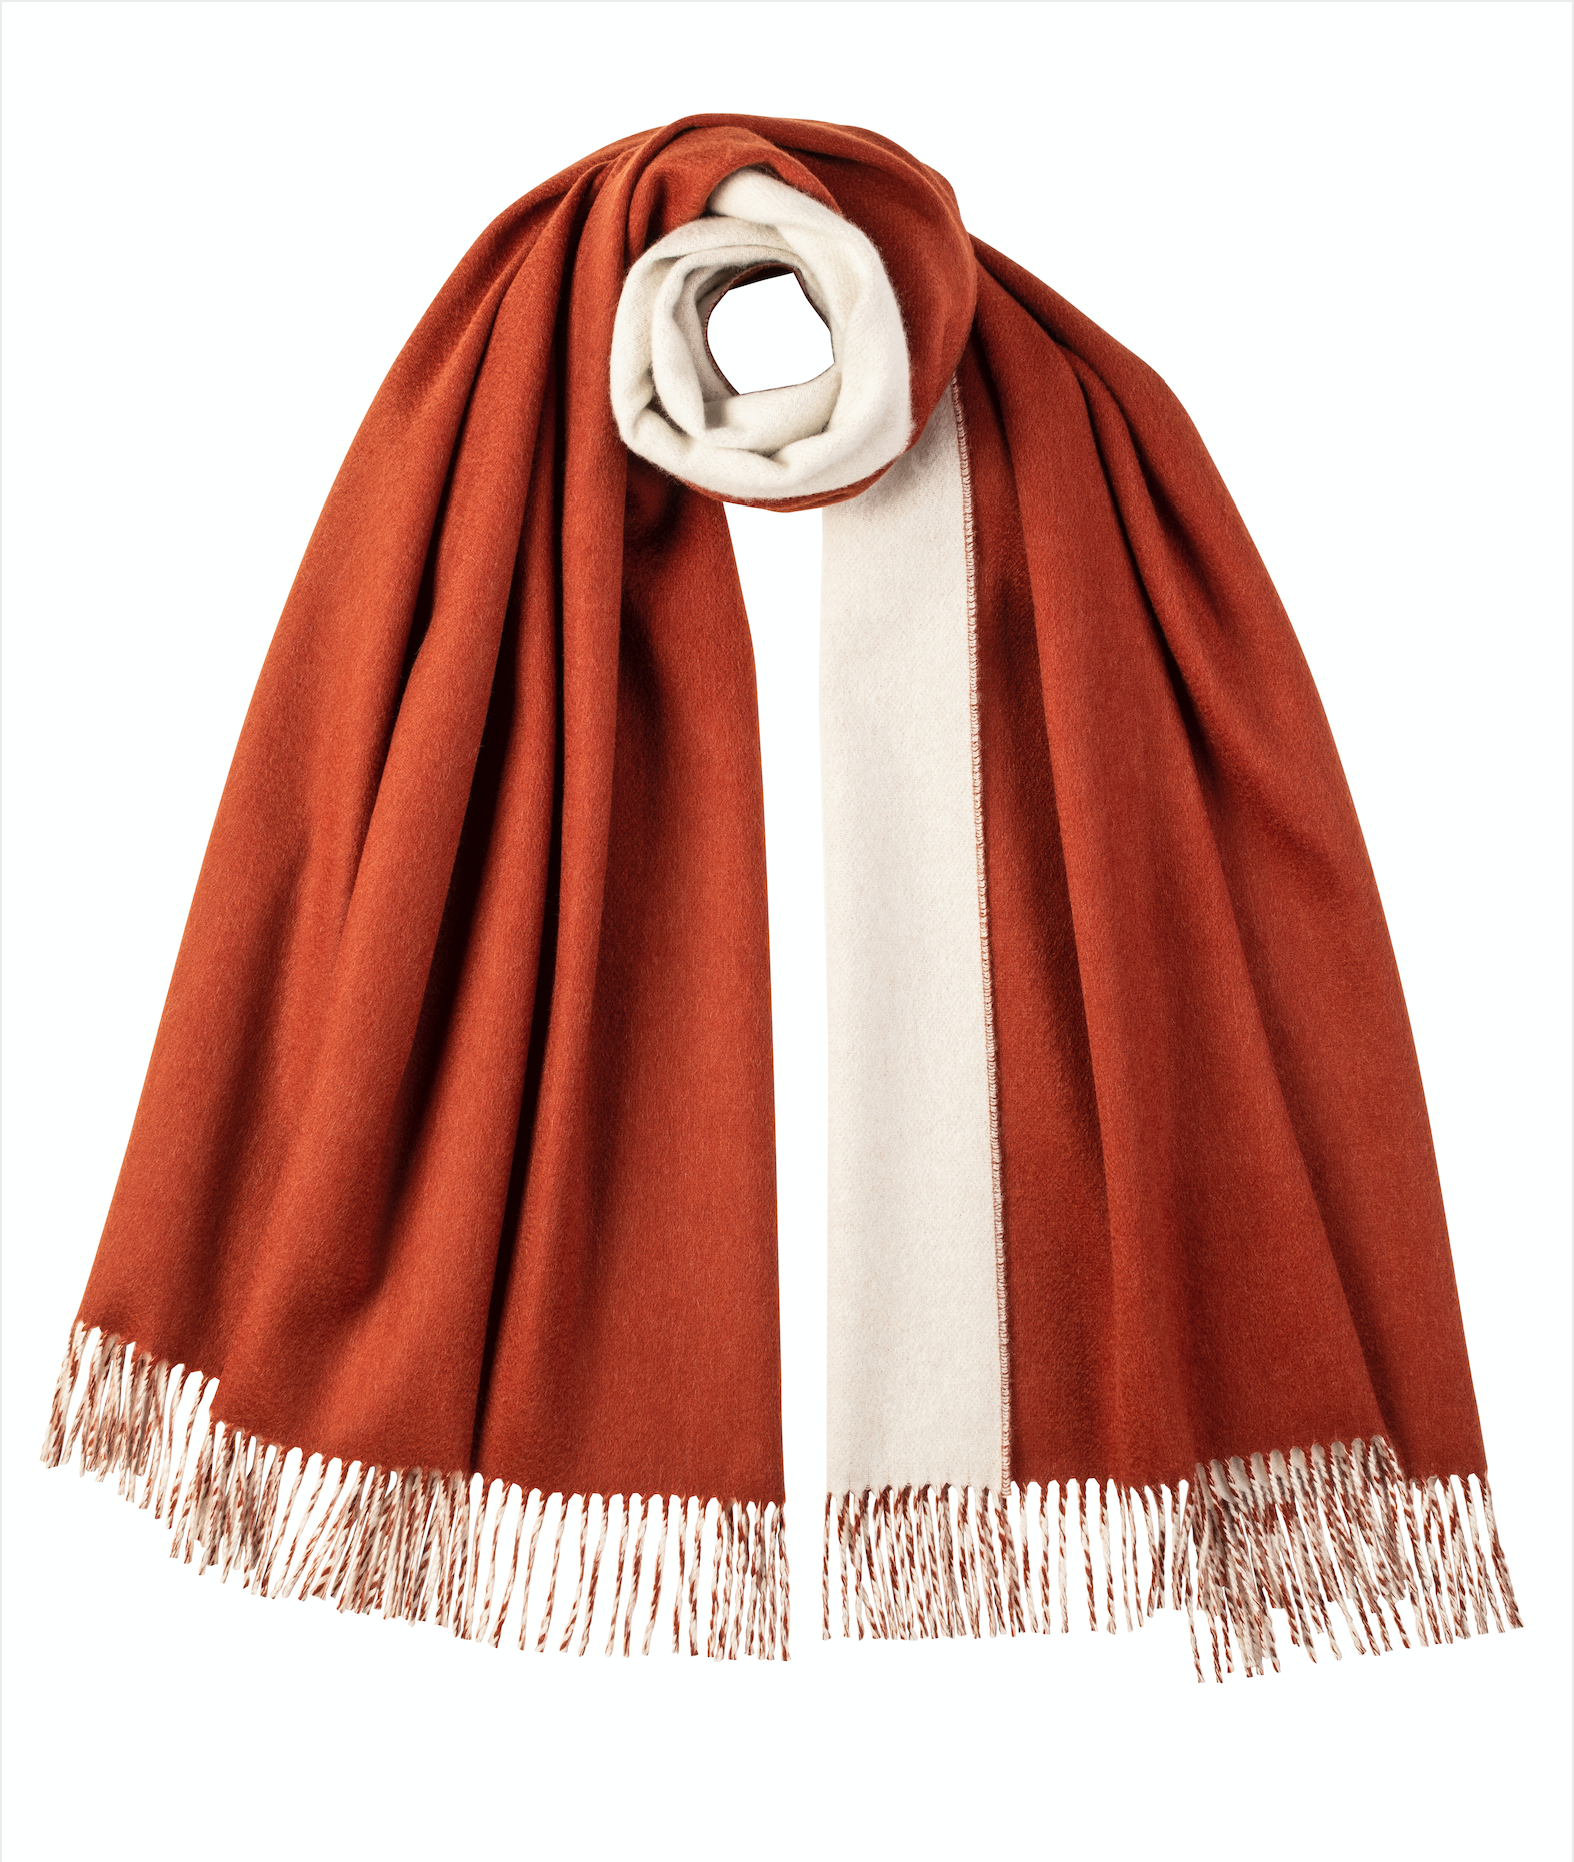 Cashmere Stole | Rust & White Contrast